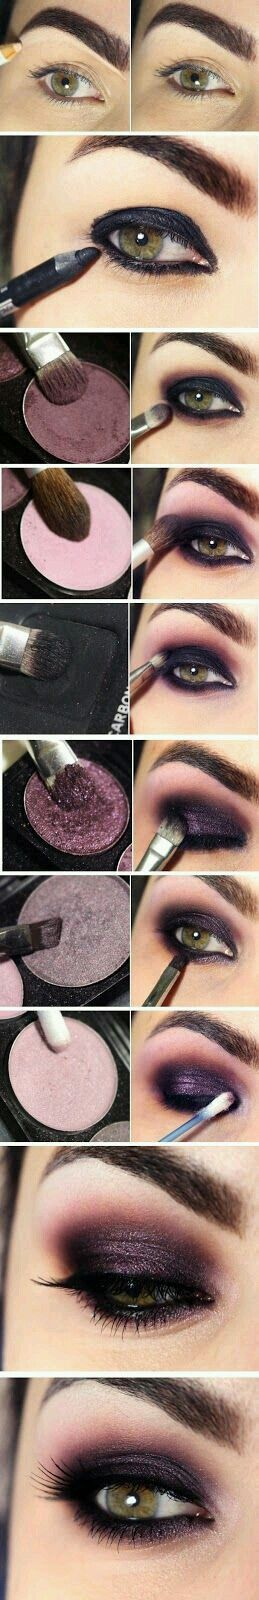 Prettty Smokey eyes tutorial